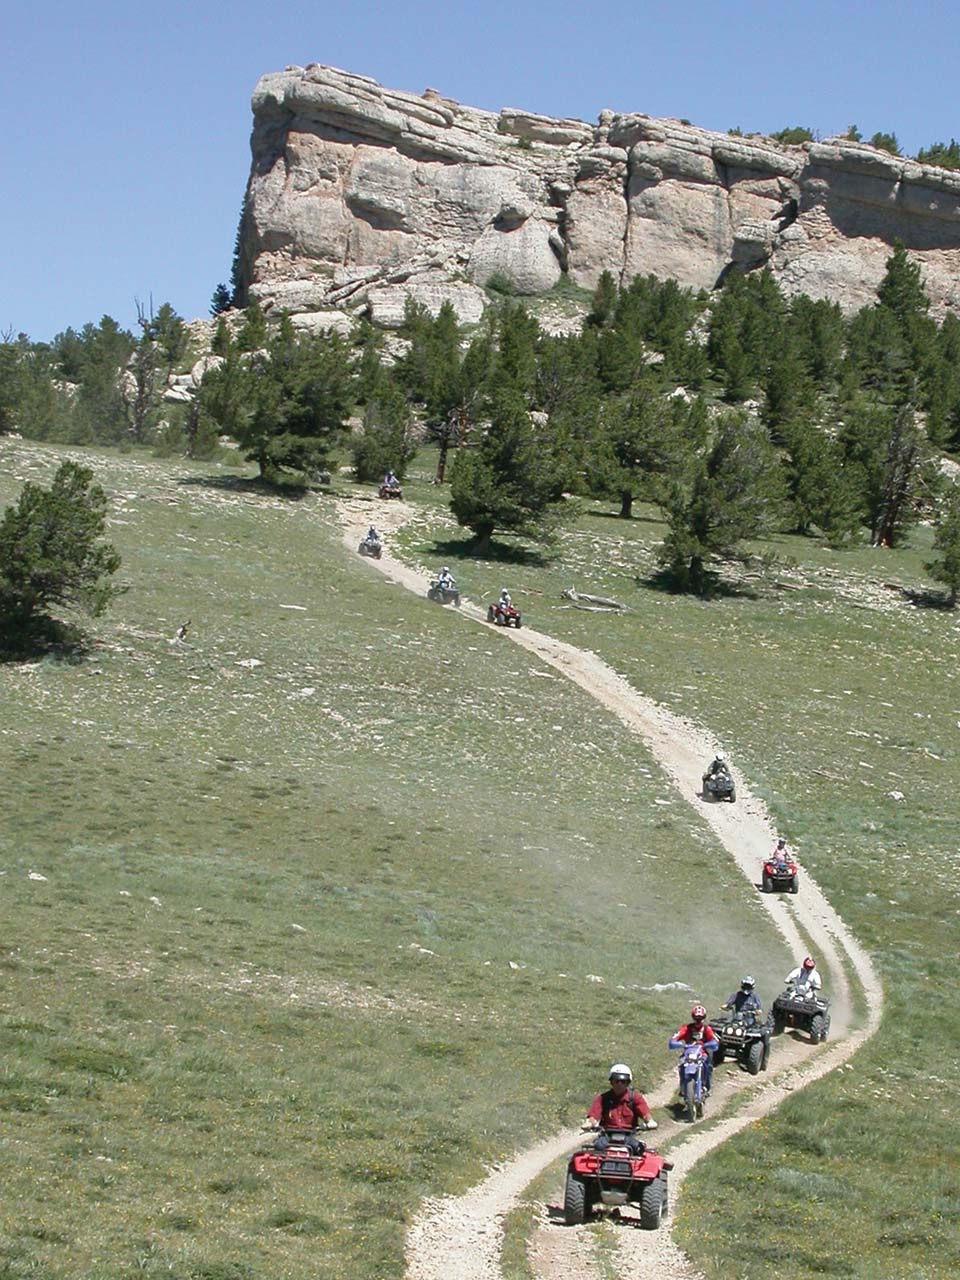 location.2010.elko-county.nevada.atvs_.riding.on-trails.jpg